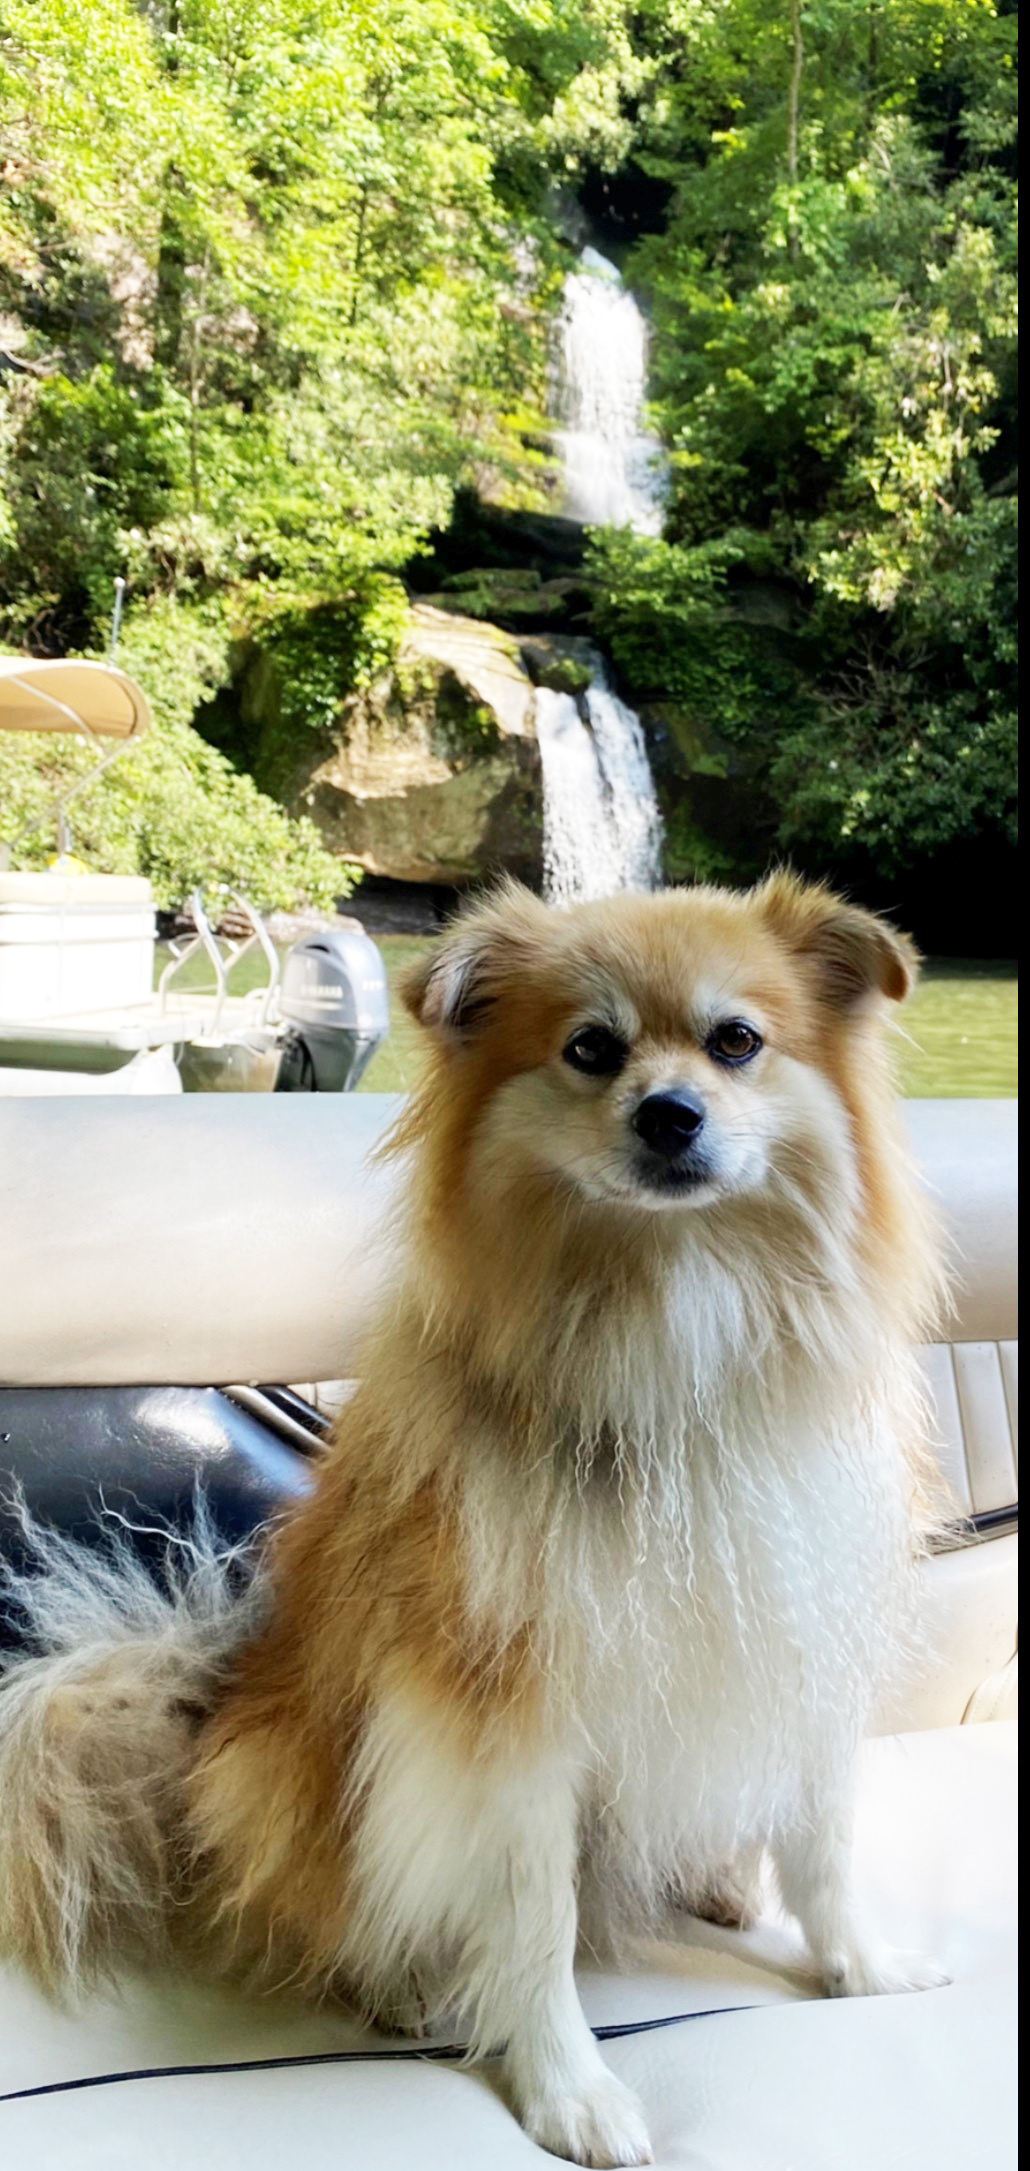 Pepper: Submitted by Irene Hammer Pepper is chilling and enjoying the beautiful waterfalls on Lake Jocassee.